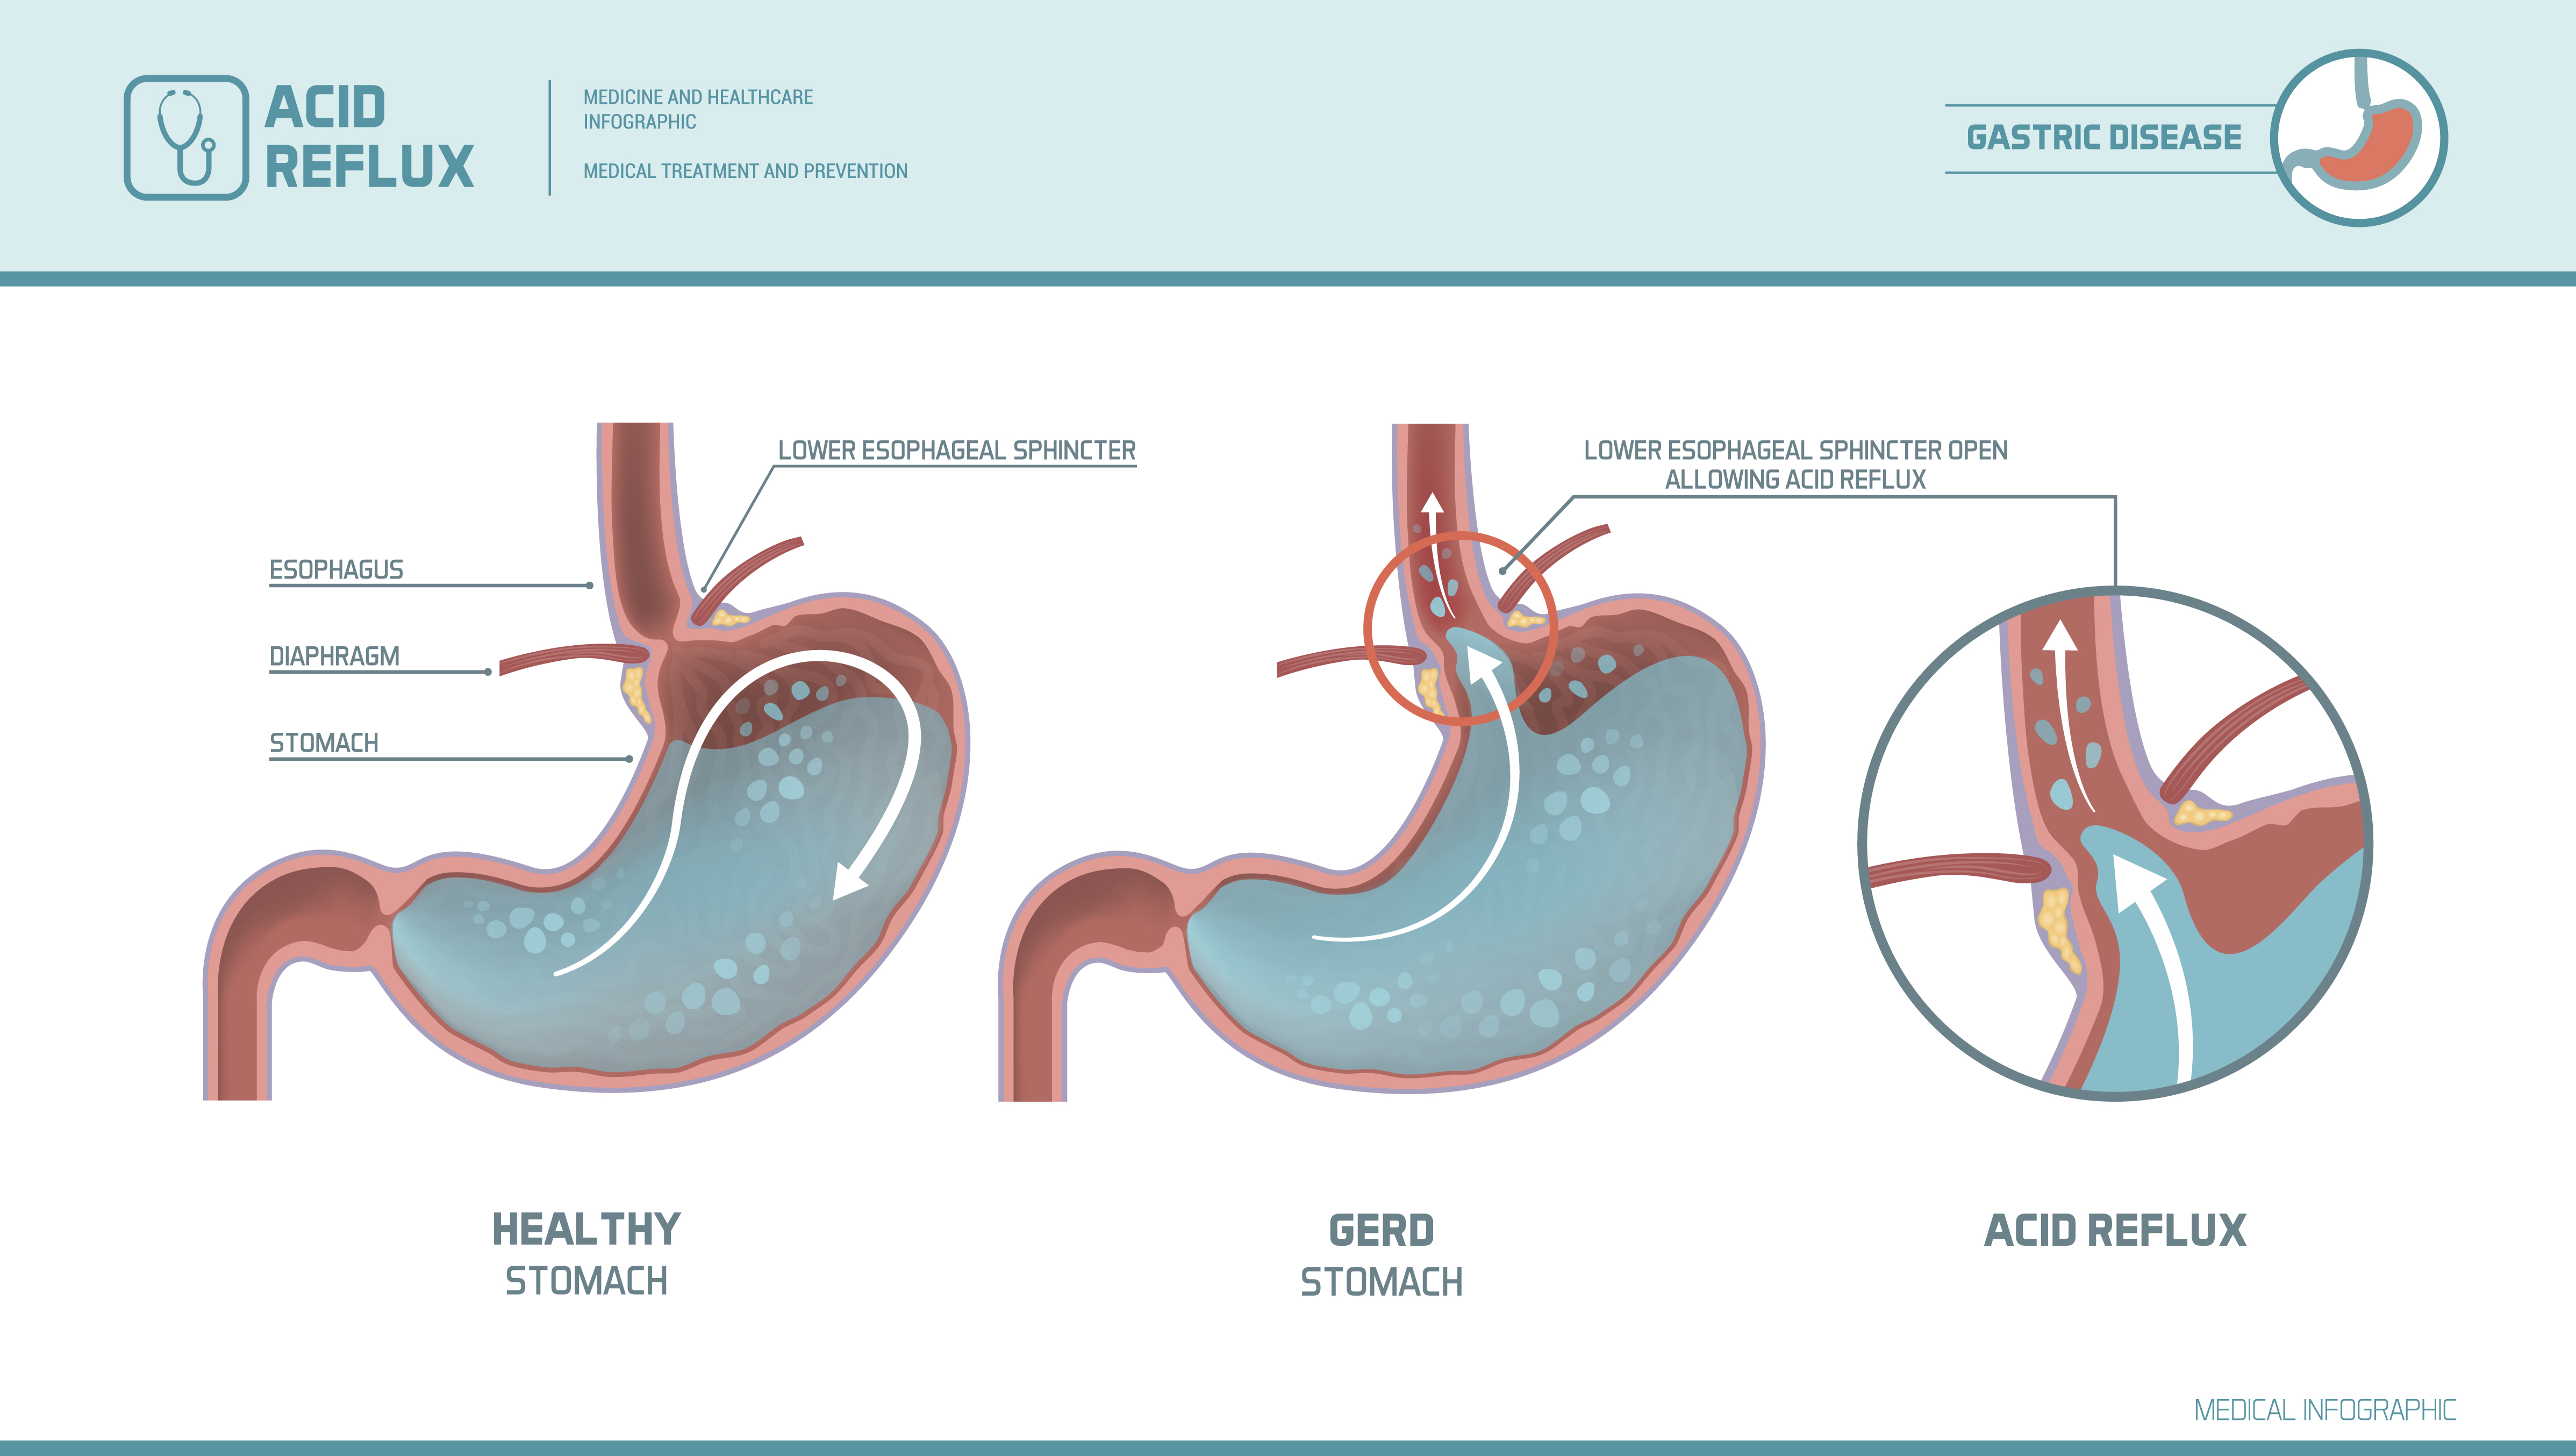 Acid reflux, heartburn and gerd infographic with medical illustration